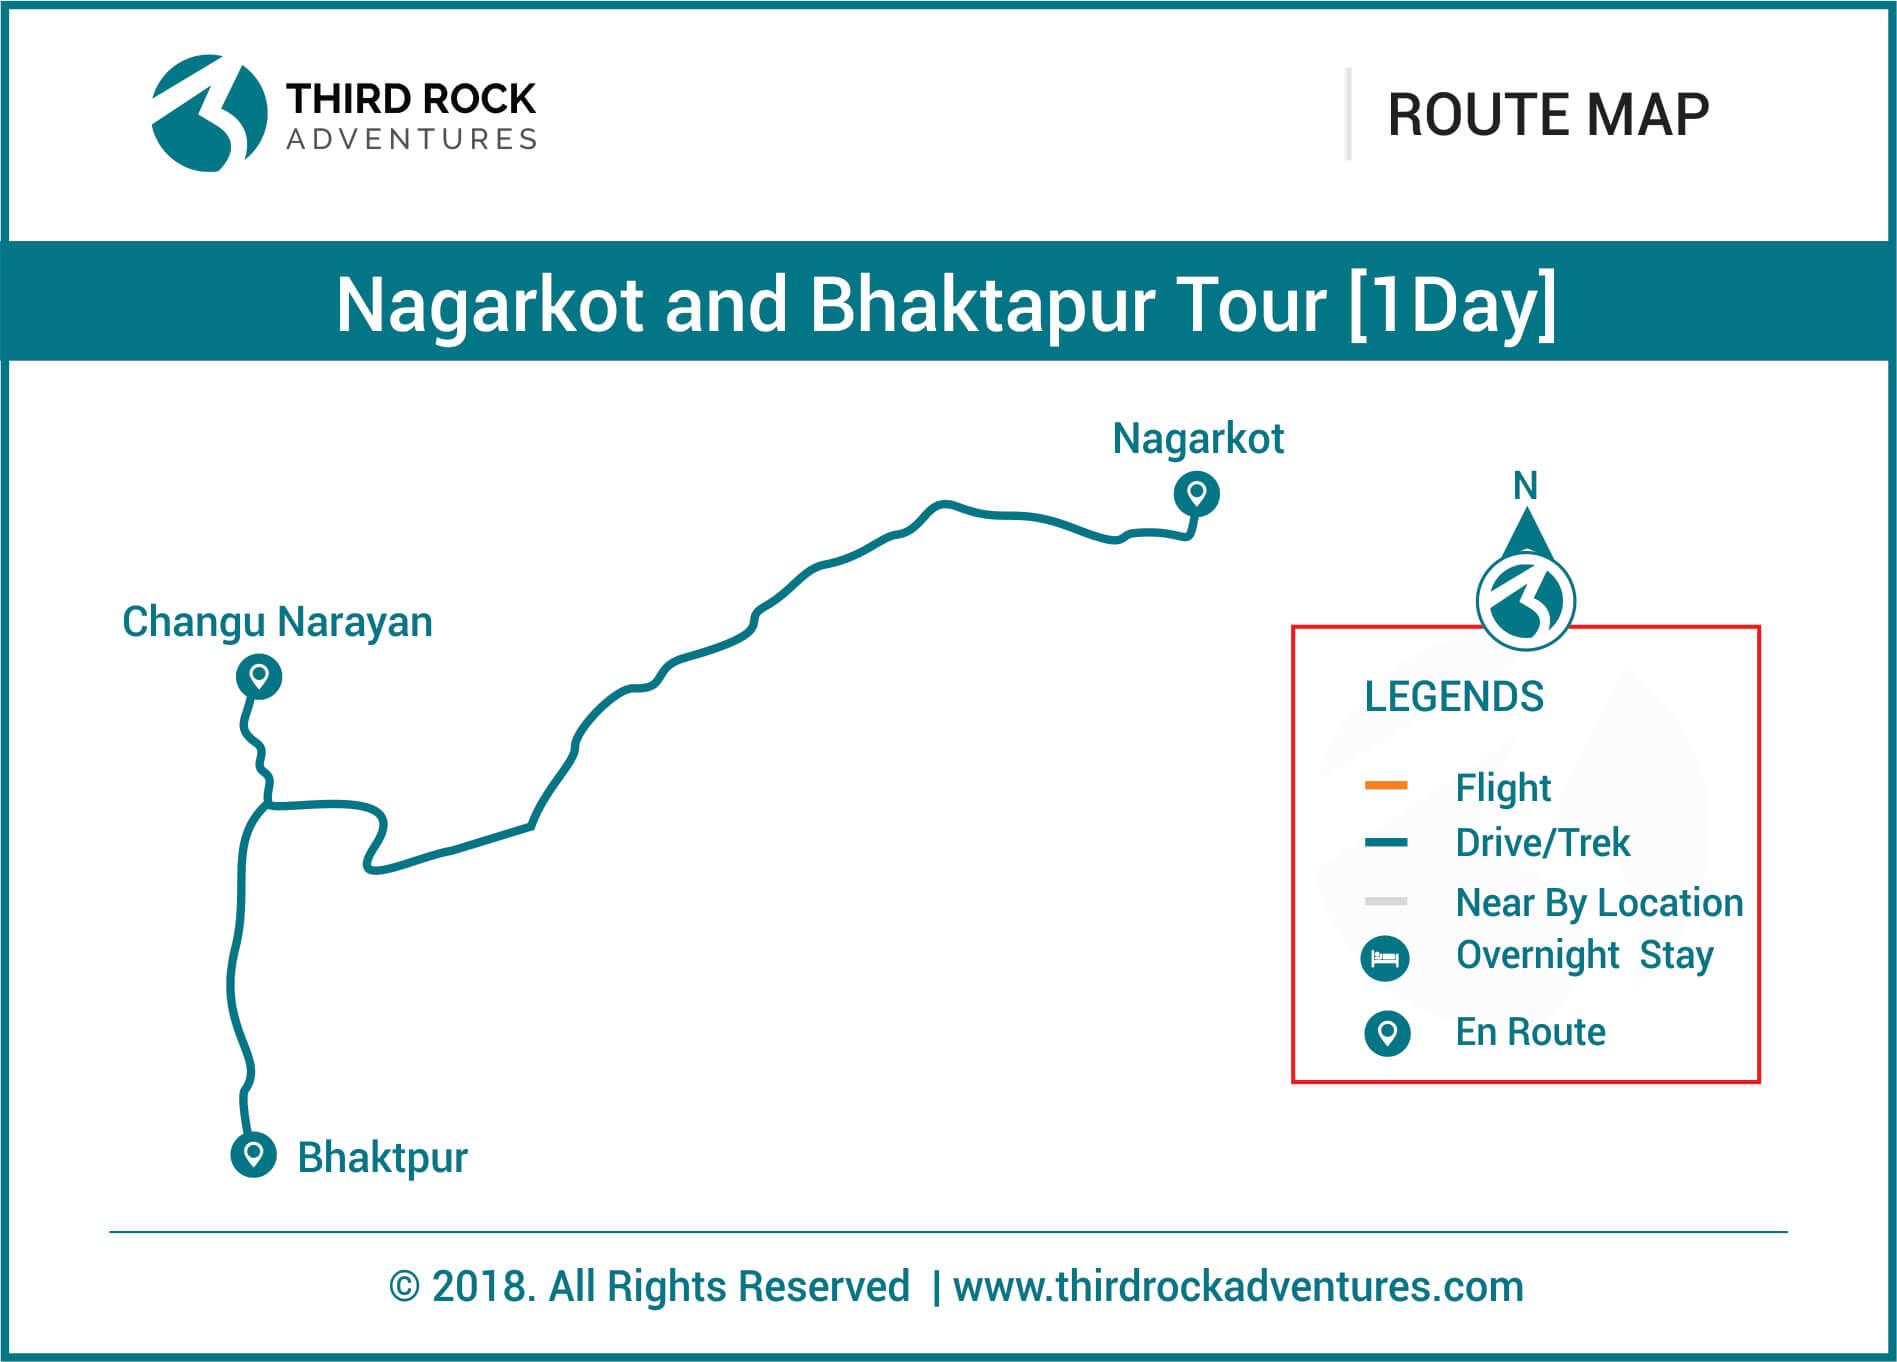 Nagarkot and Bhaktapur Tour 1 day Route Map